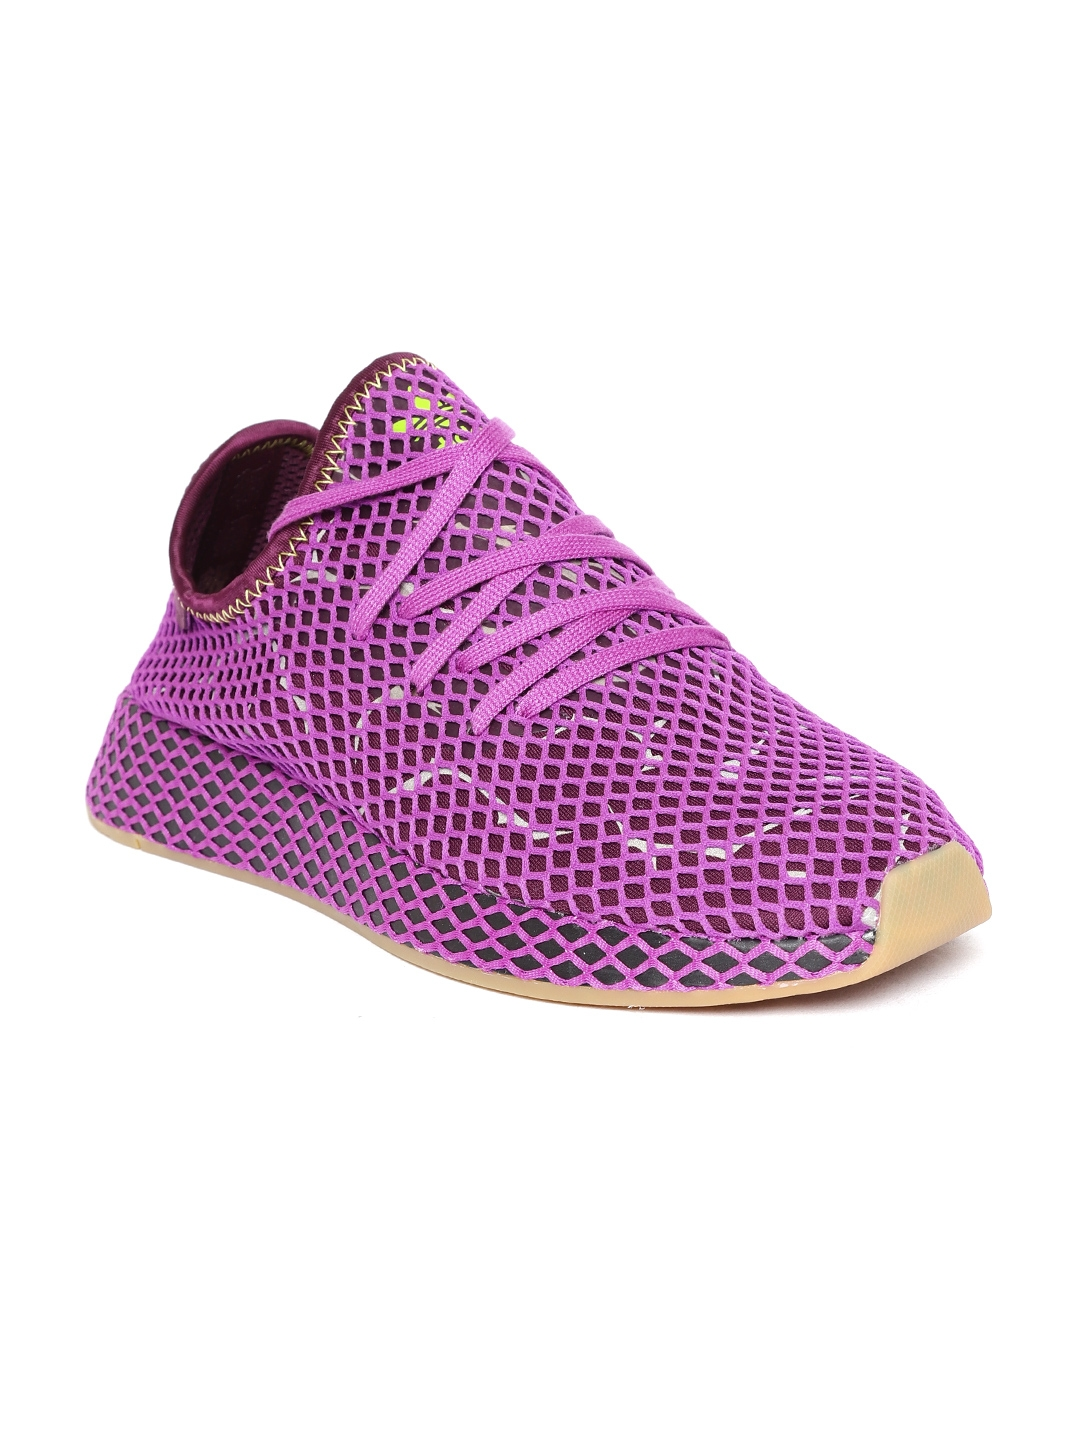 e00041f4d23a4 Buy ADIDAS Originals Men Purple Deerupt Runner Shoes - Casual Shoes ...